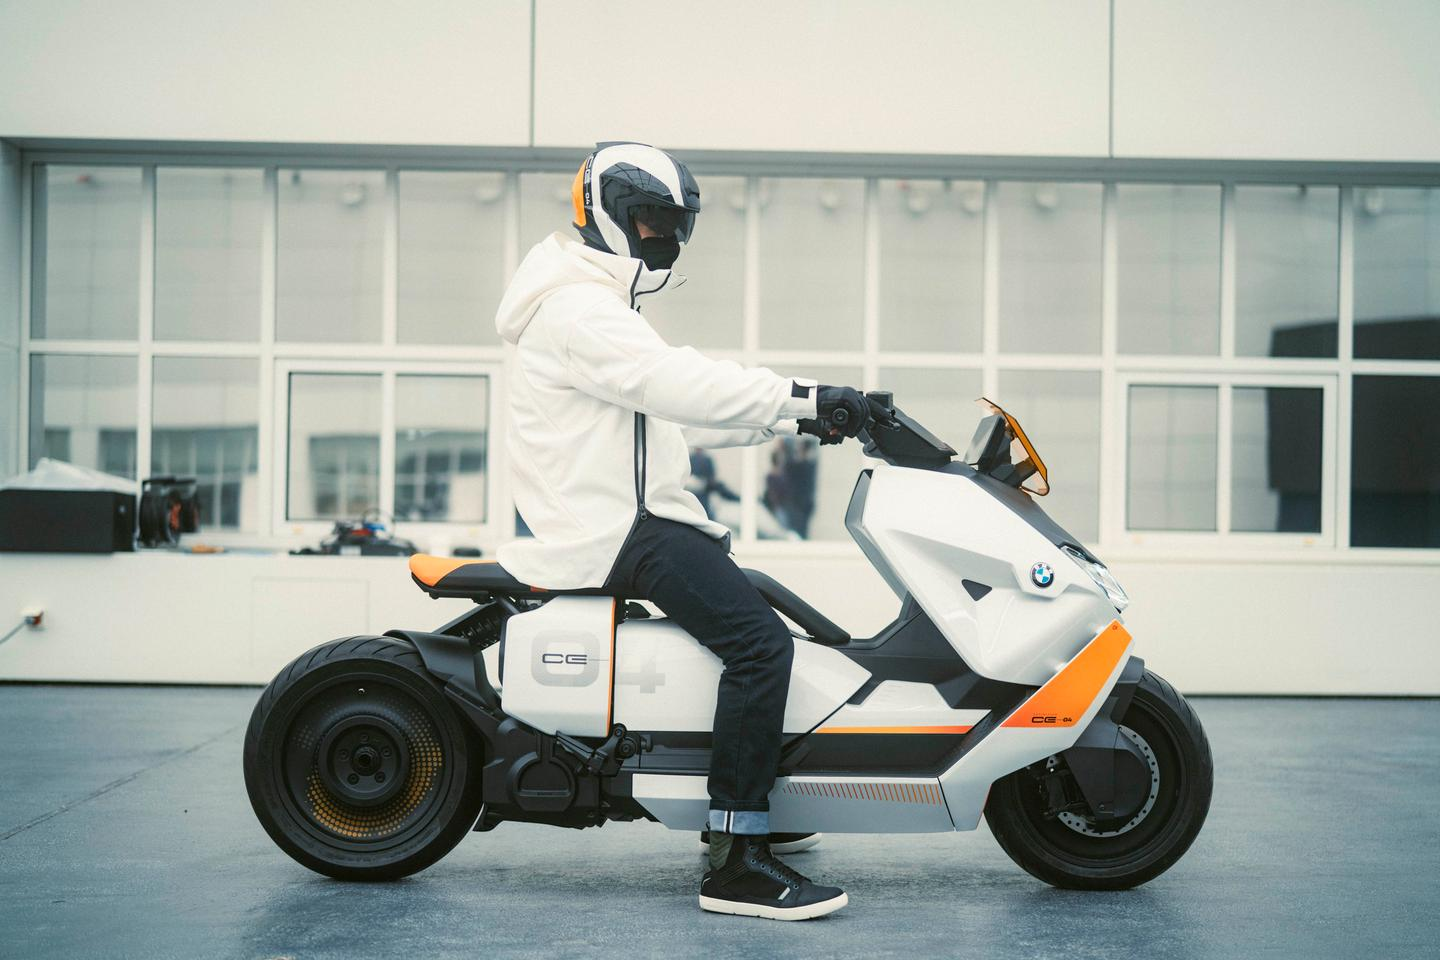 The BMW Motorrad Definition CE 04 - the final step between BMW's Concept Link and an upcoming production electric scooter